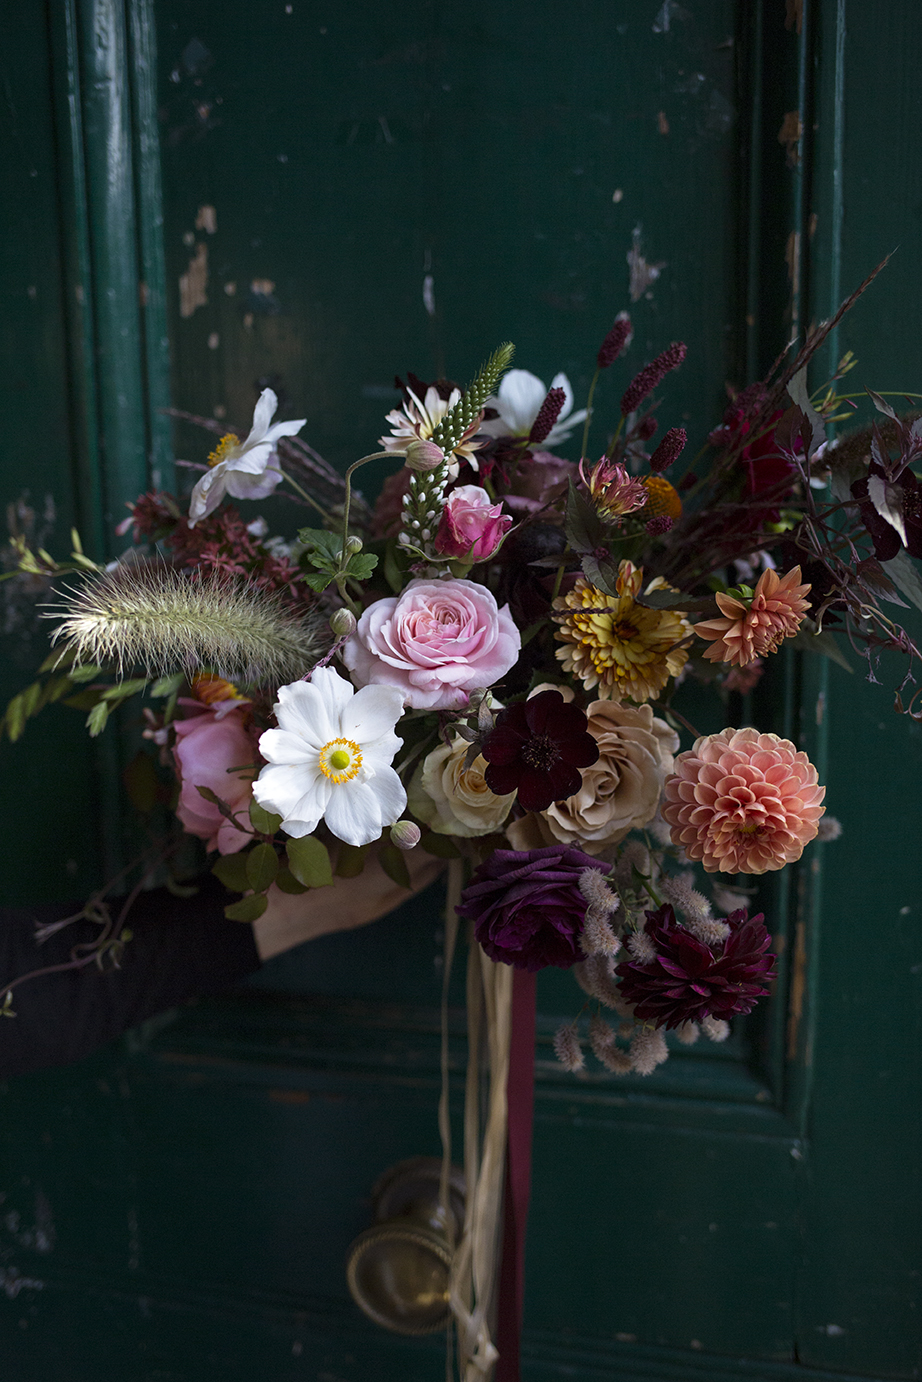 Autumnal bouquet of garden flowers and fluffy grasses, with velvety chocolate cosmos, rusty pom-pom dahlias and crisp white Japanese anemones